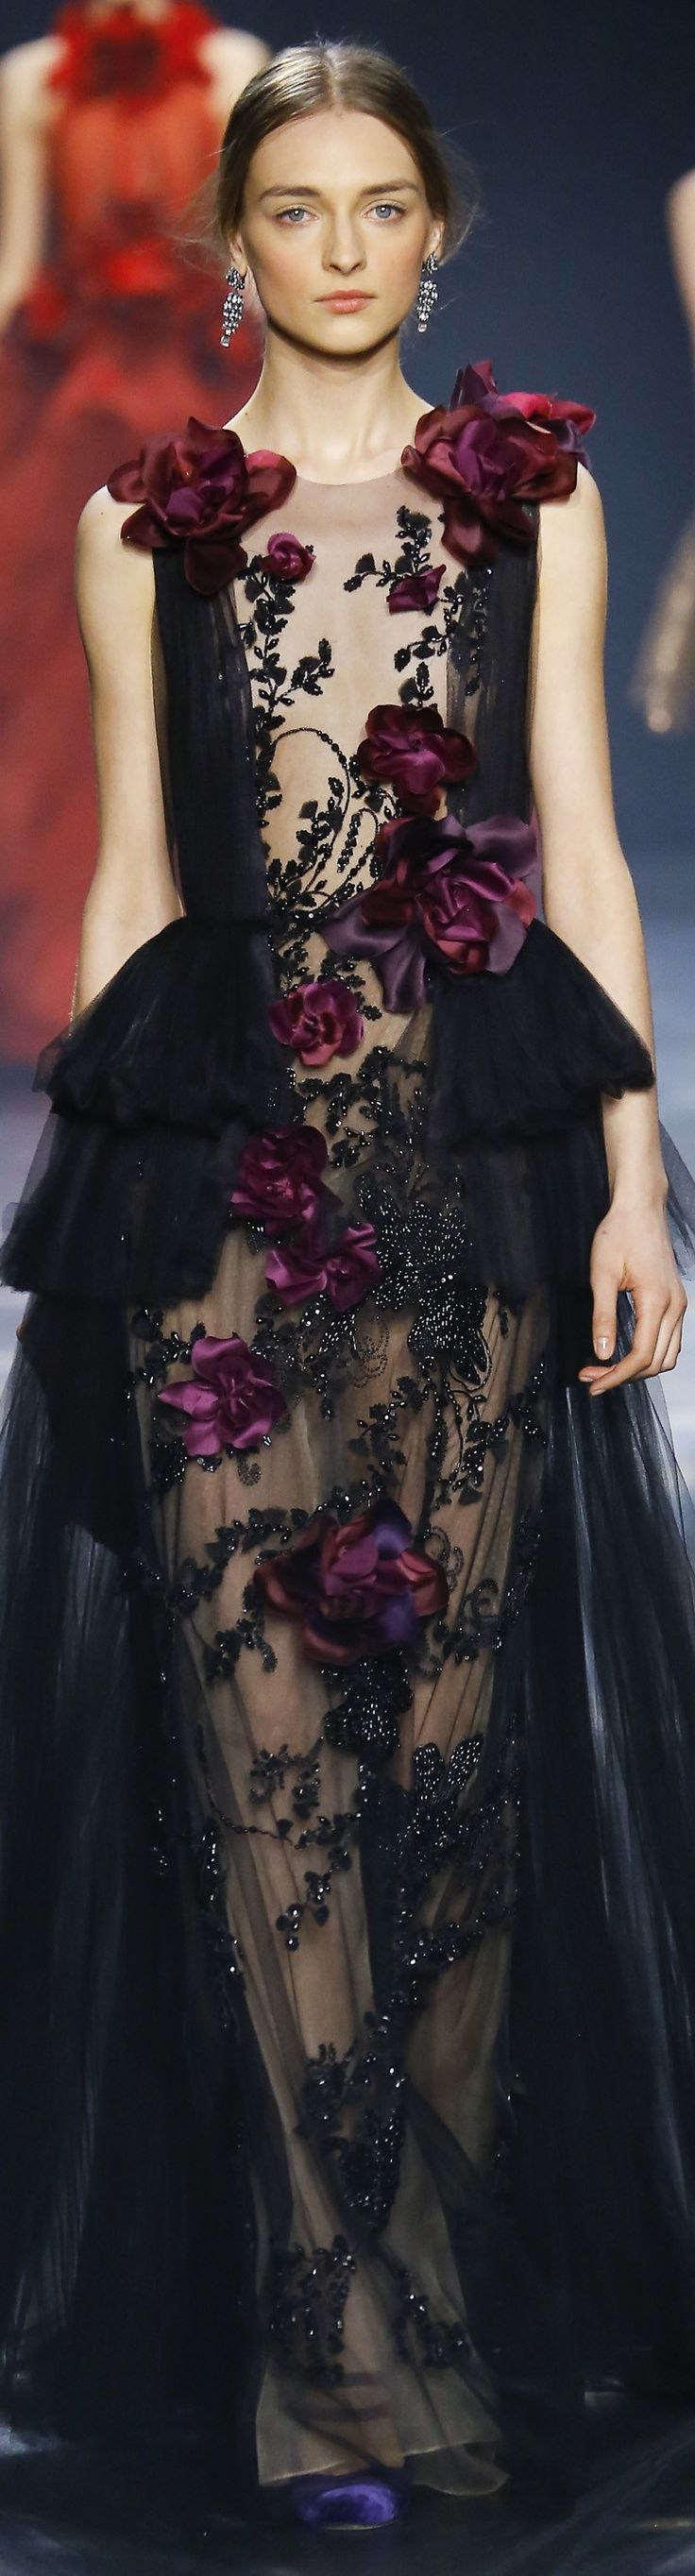 RosamariaGFrangini | VIPBlackOrchidClub  | FashionChic | Marchesa fall 2016 RTW                                                                                                                                                      More